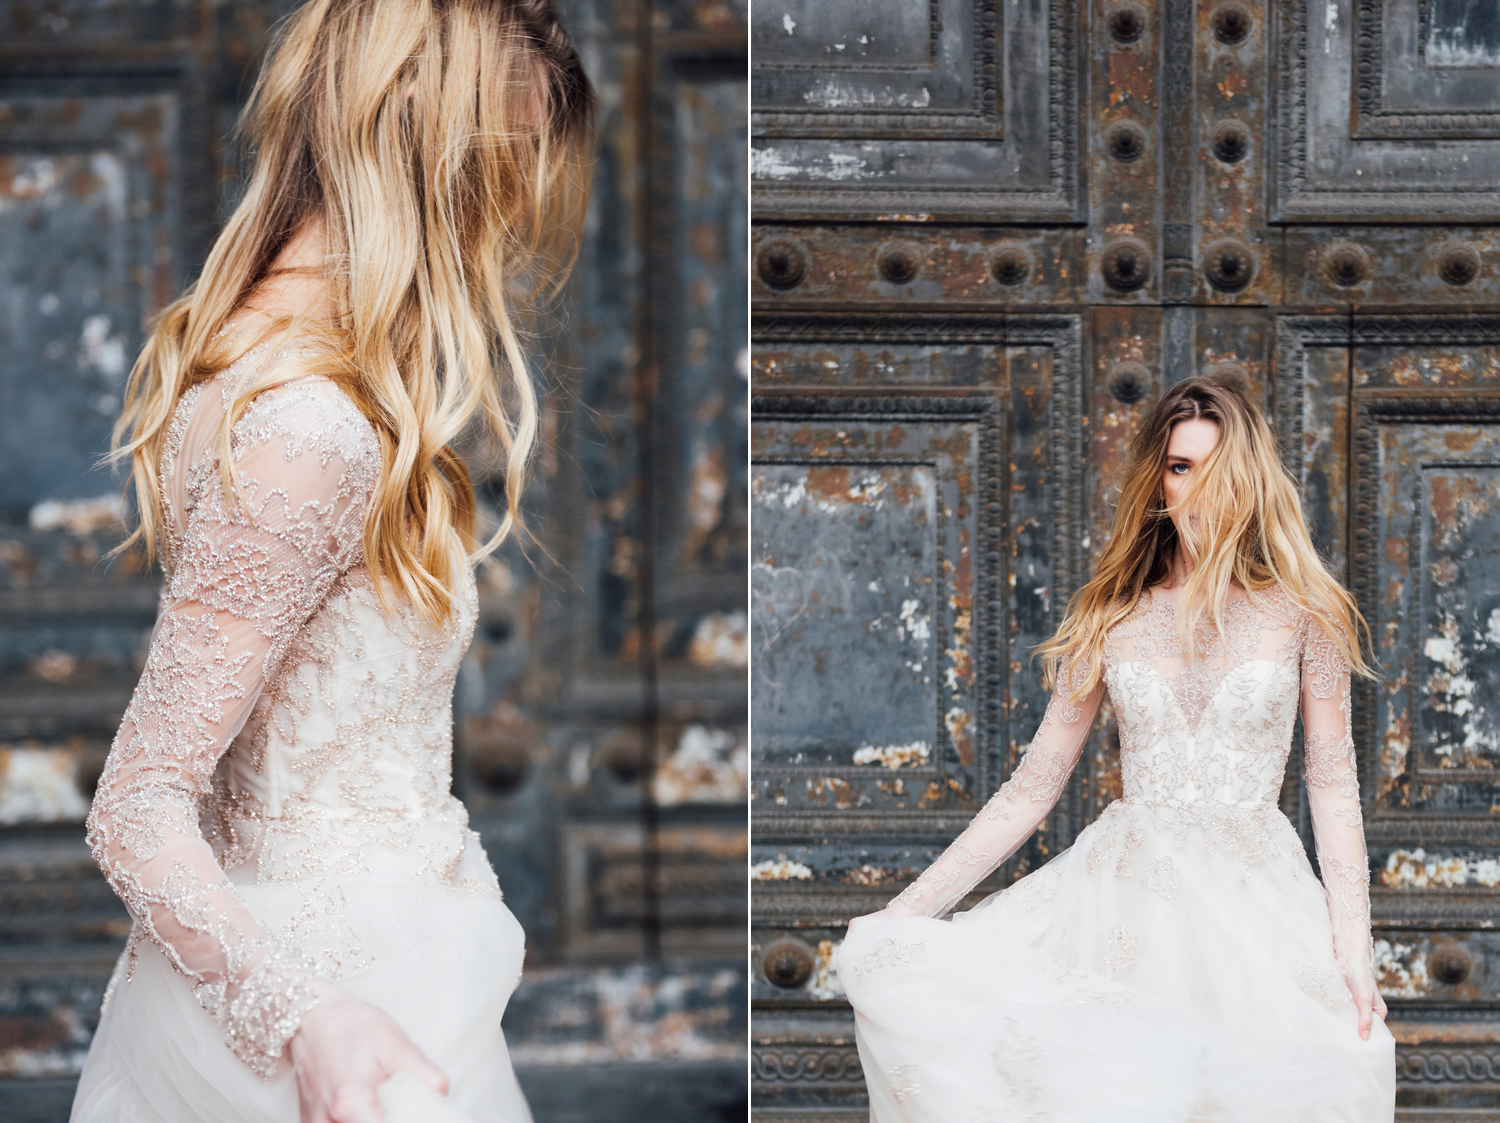 katie mitchell monique lhuillier bridal paris france wedding photographer_17.jpg